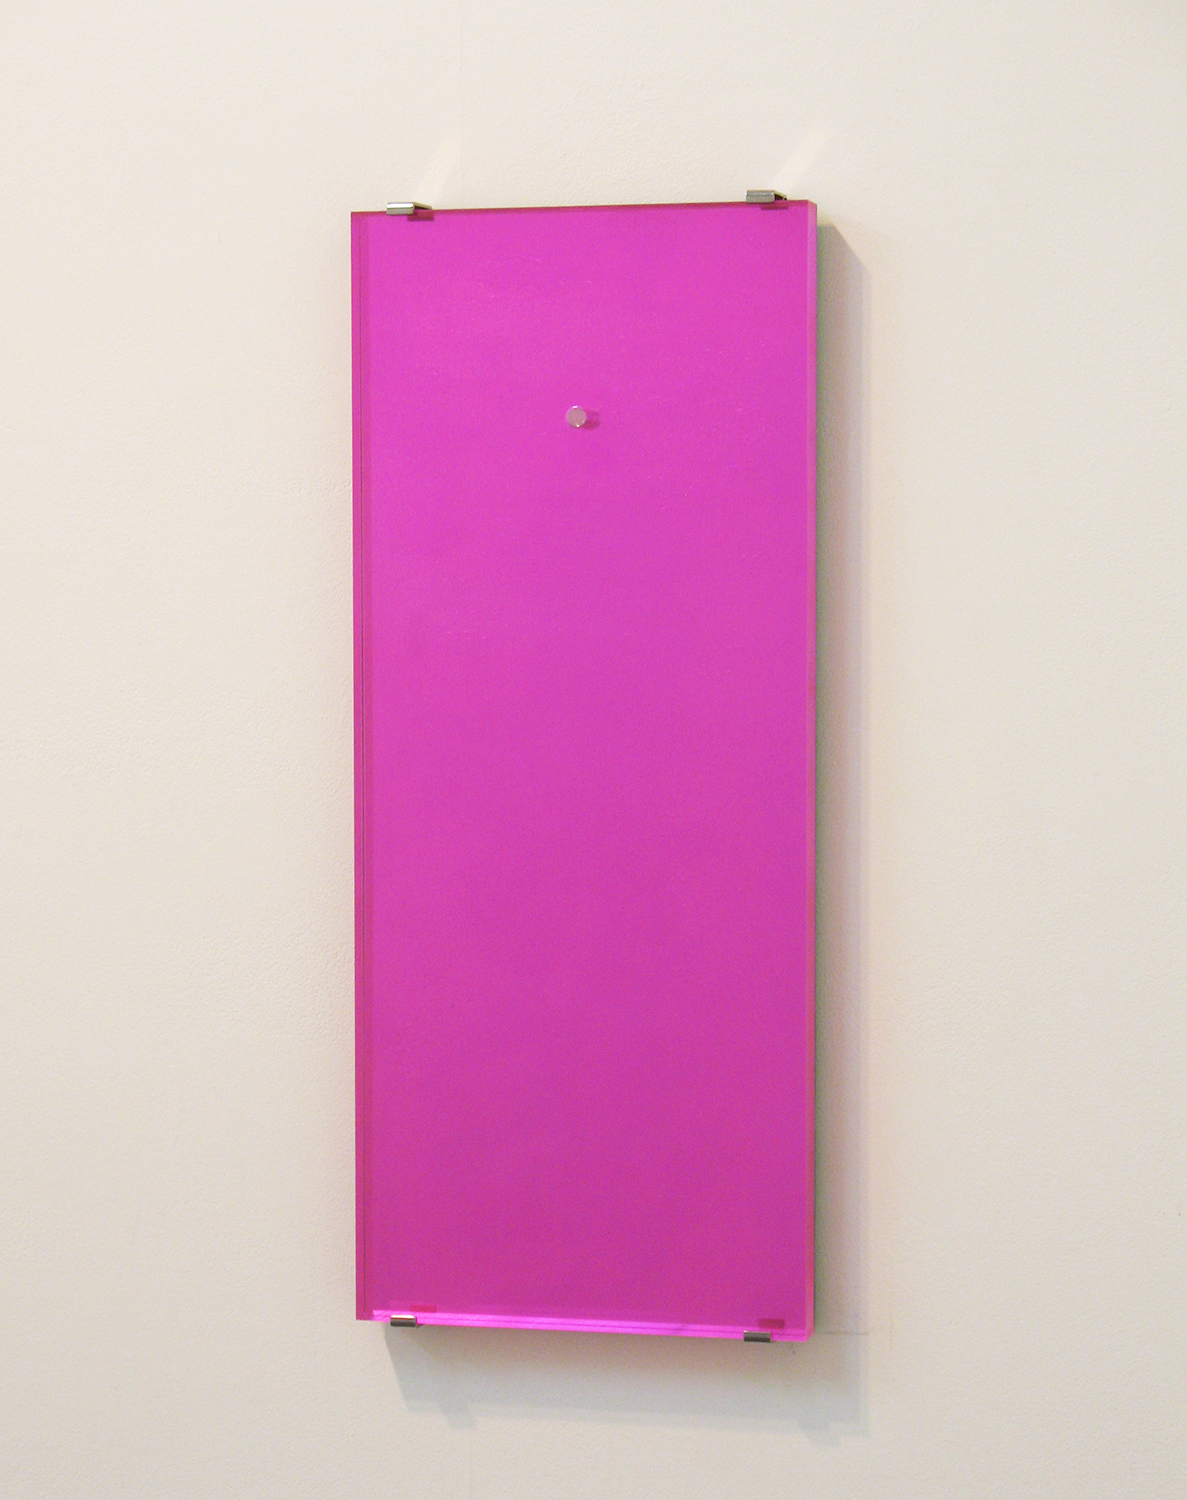 鏡/微分する眼|miror/differentiated eyes<br>mirror finish acrylic, acrylic acid resin, fluorescent paint, plastic sheet 610 x 250 x 25 mm 2010